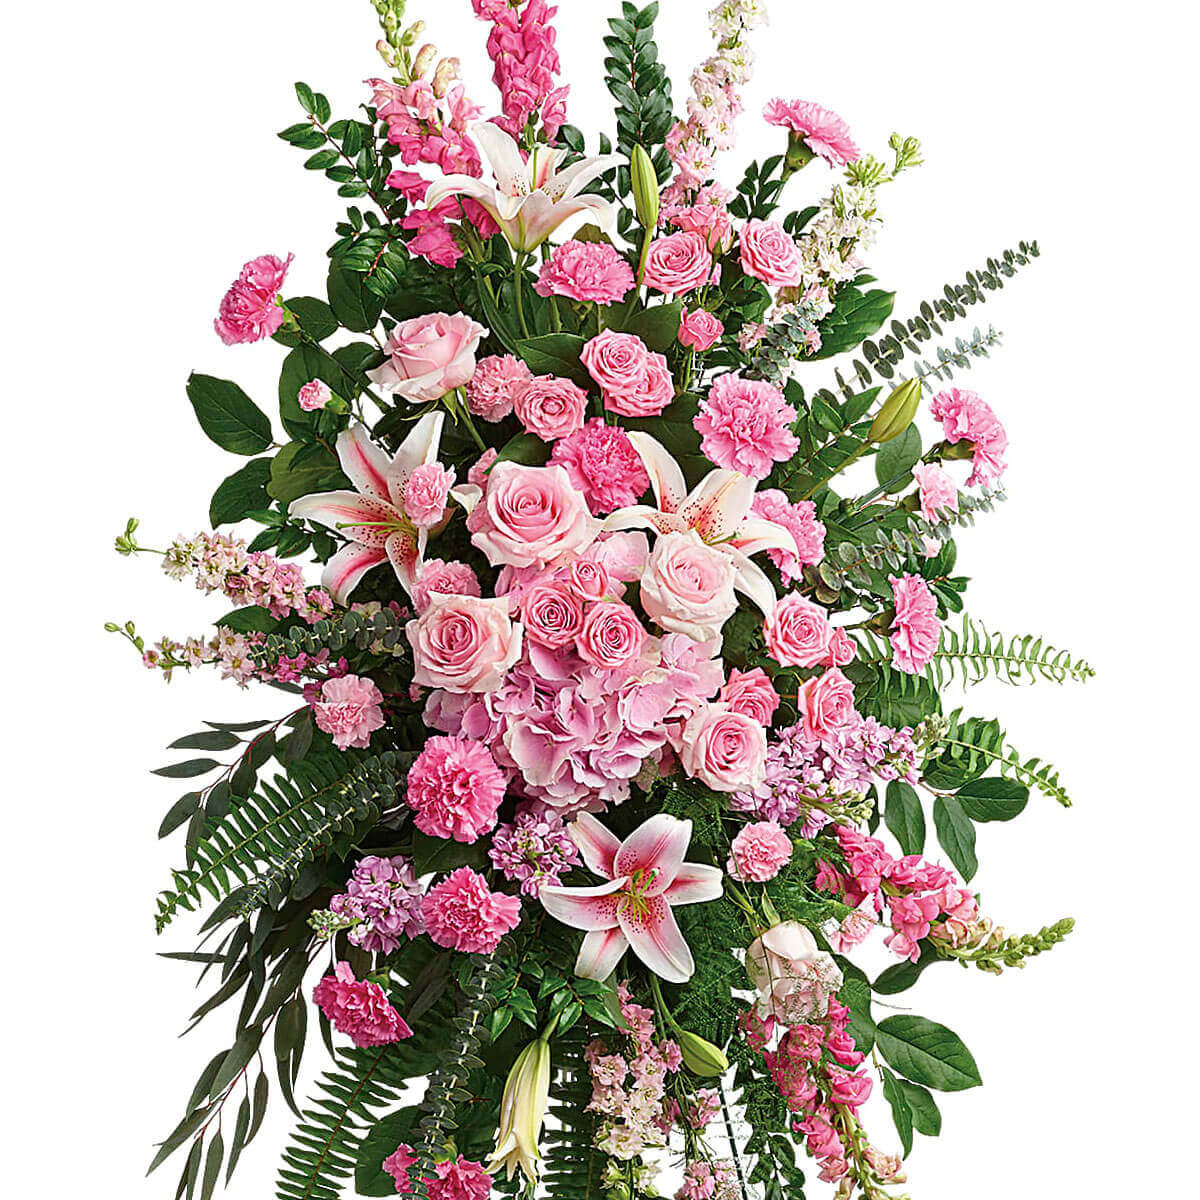 Coquitlam BC Funeral Flower Sprays and arrangements | Adele Rae